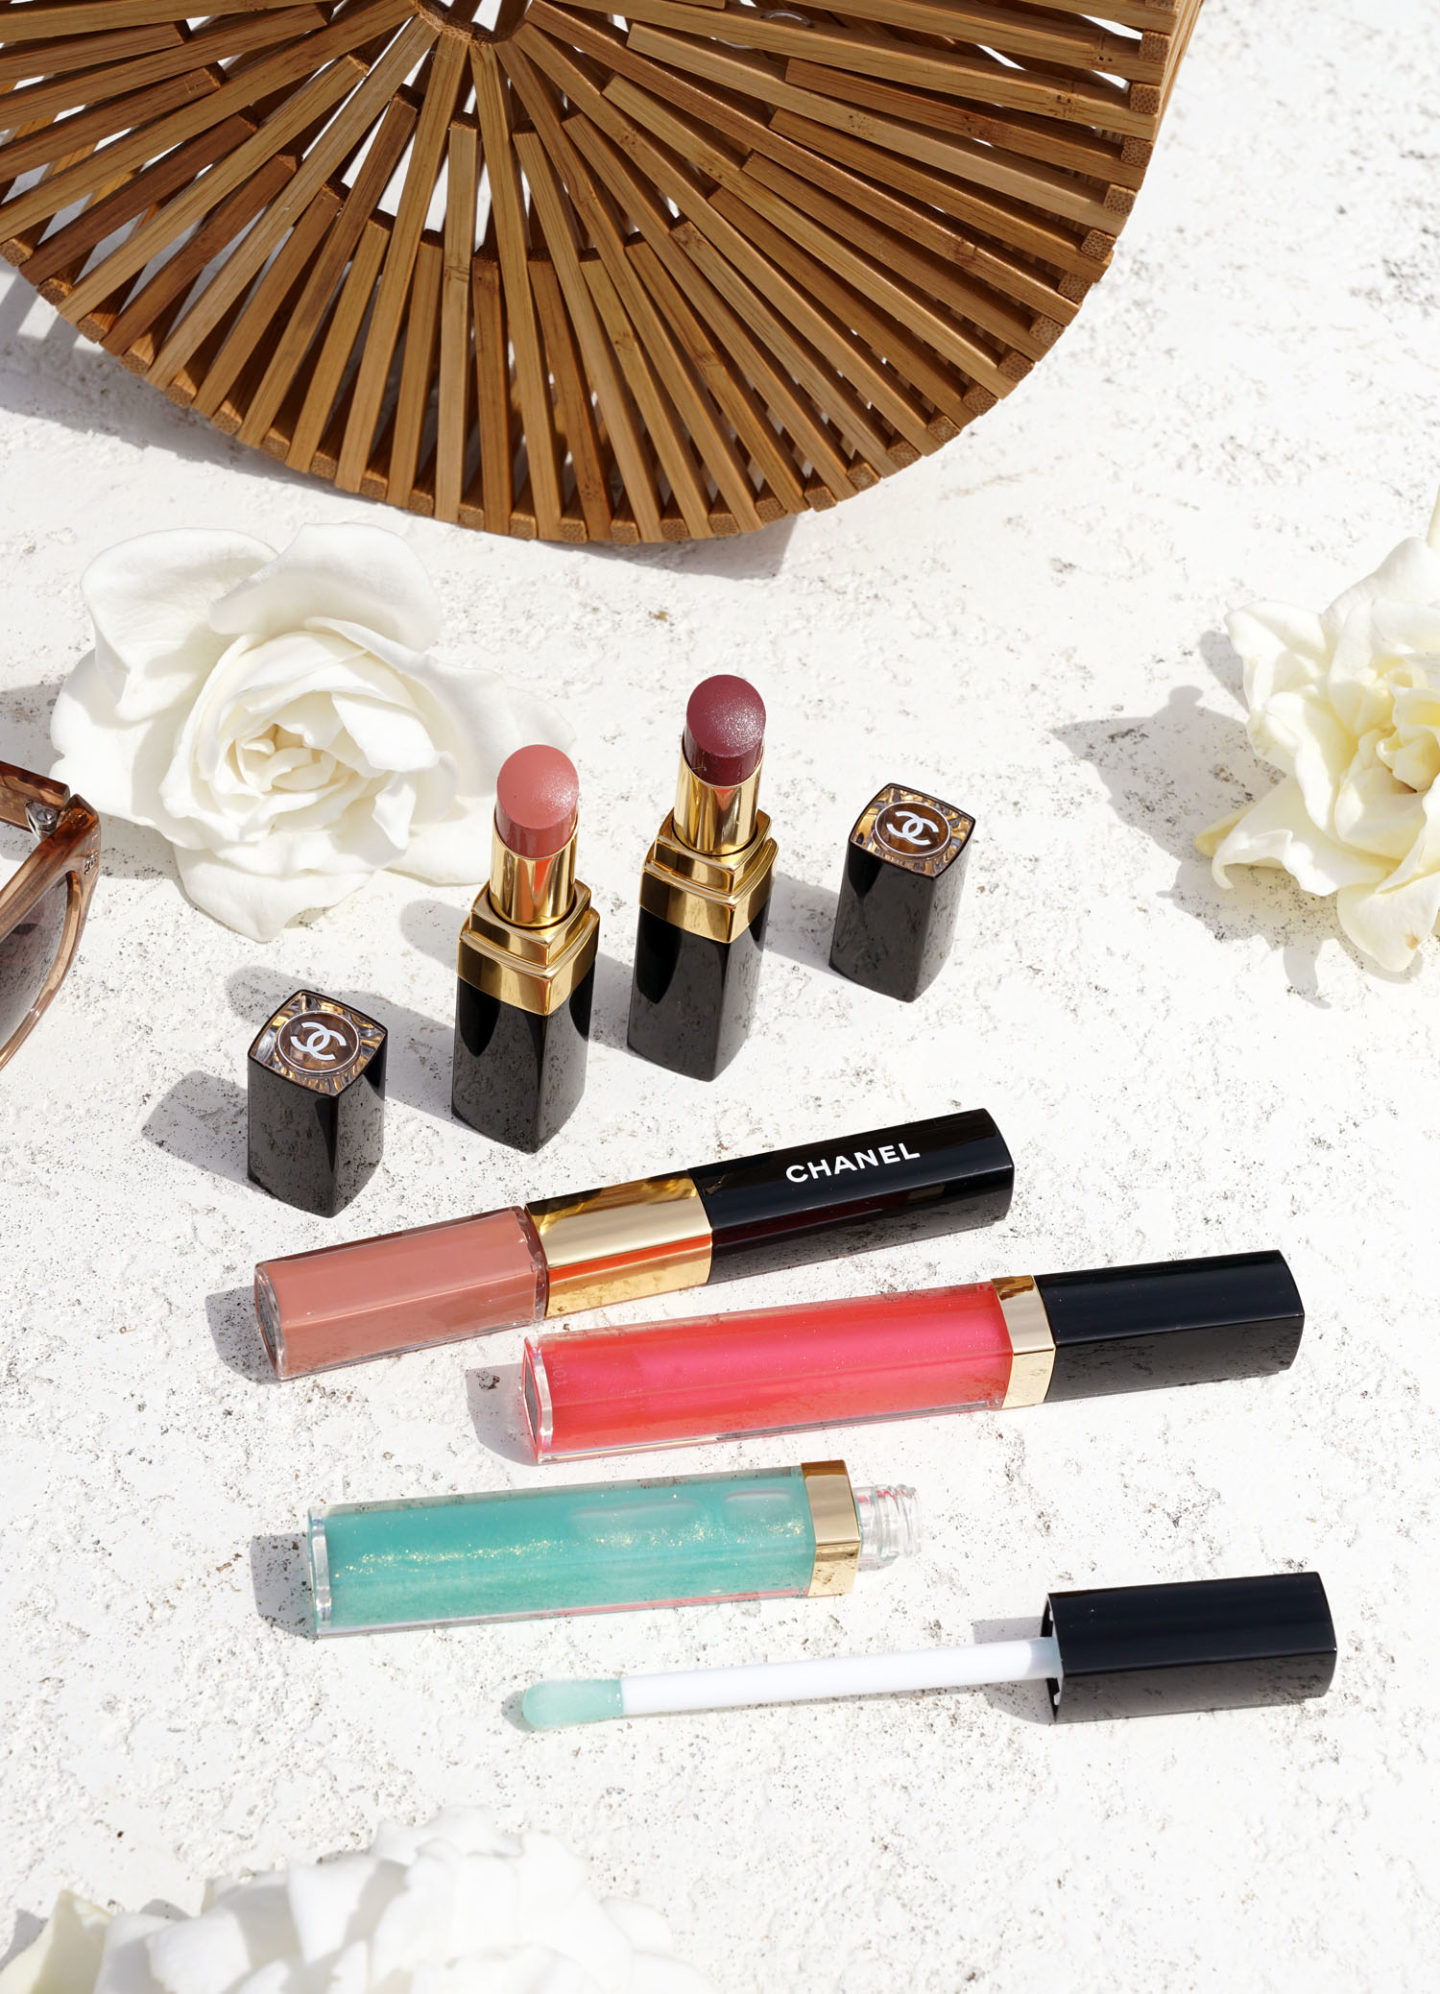 Chanel Cruise 2019 Beauty Lips Rouge Coco Flash et Gloss | Le look book beauté